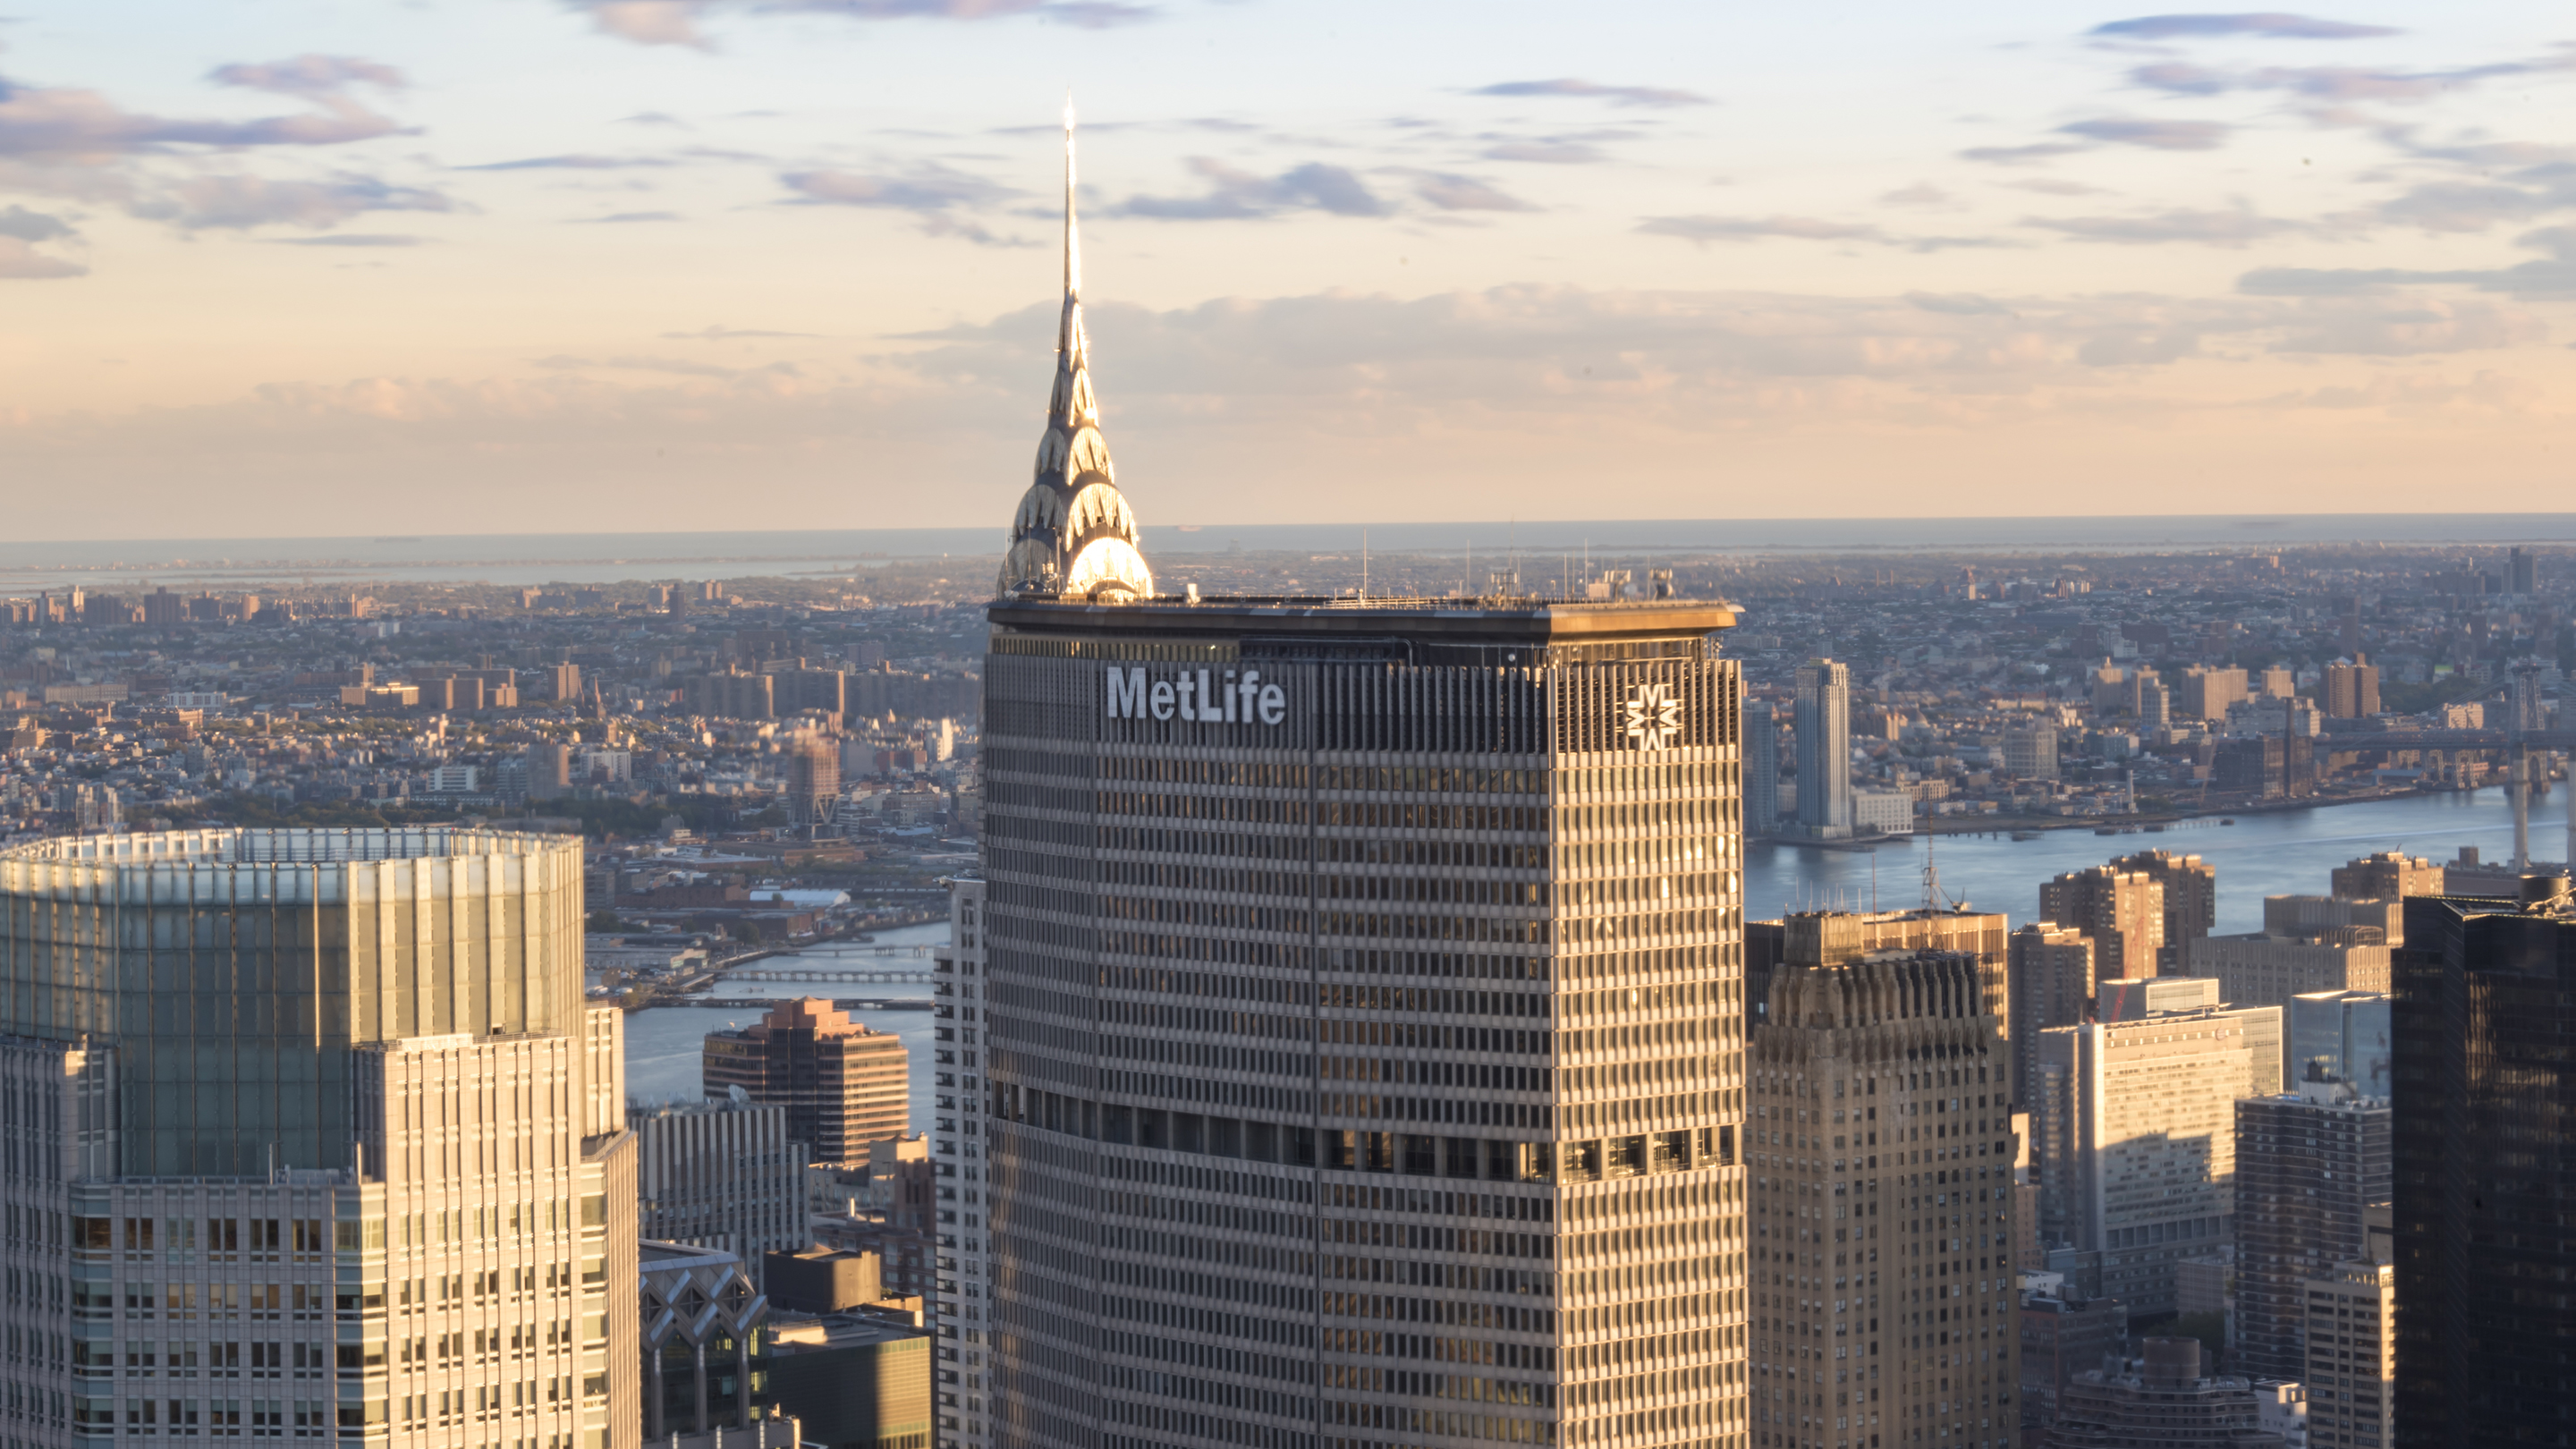 New York tours and attractions: Metlife building standing